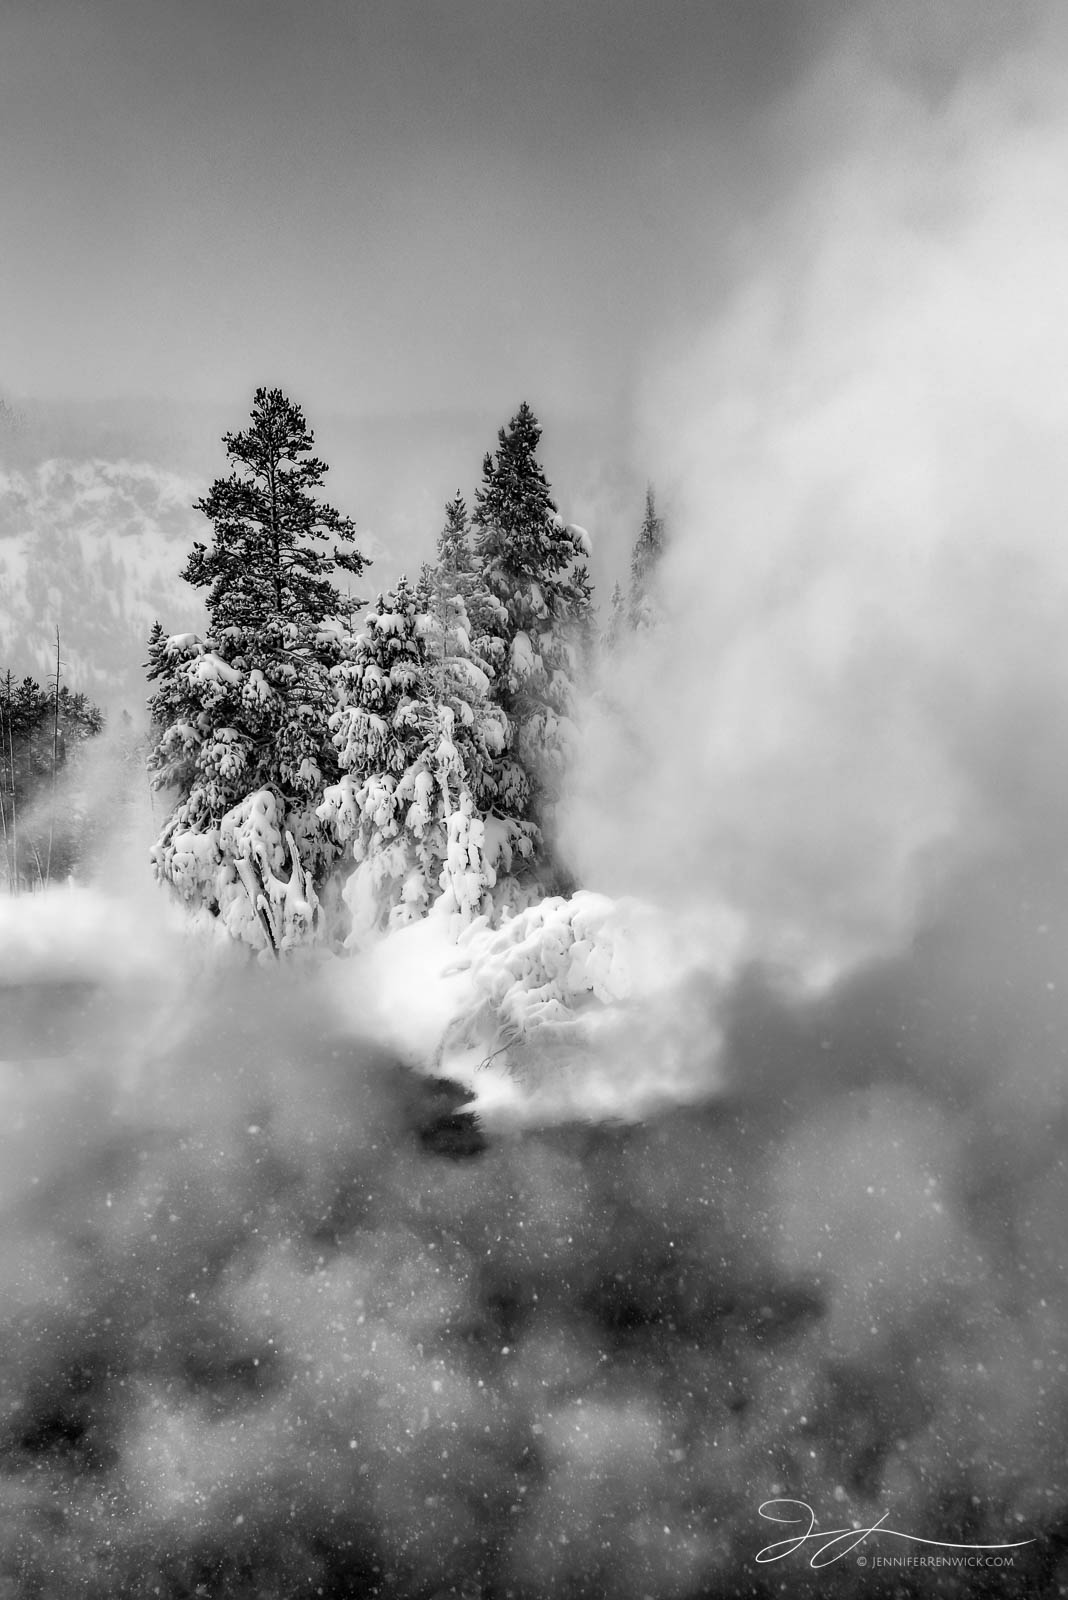 A snowstorm drops snowflakes over a thermal feature's steam in Yellowstone National Park.